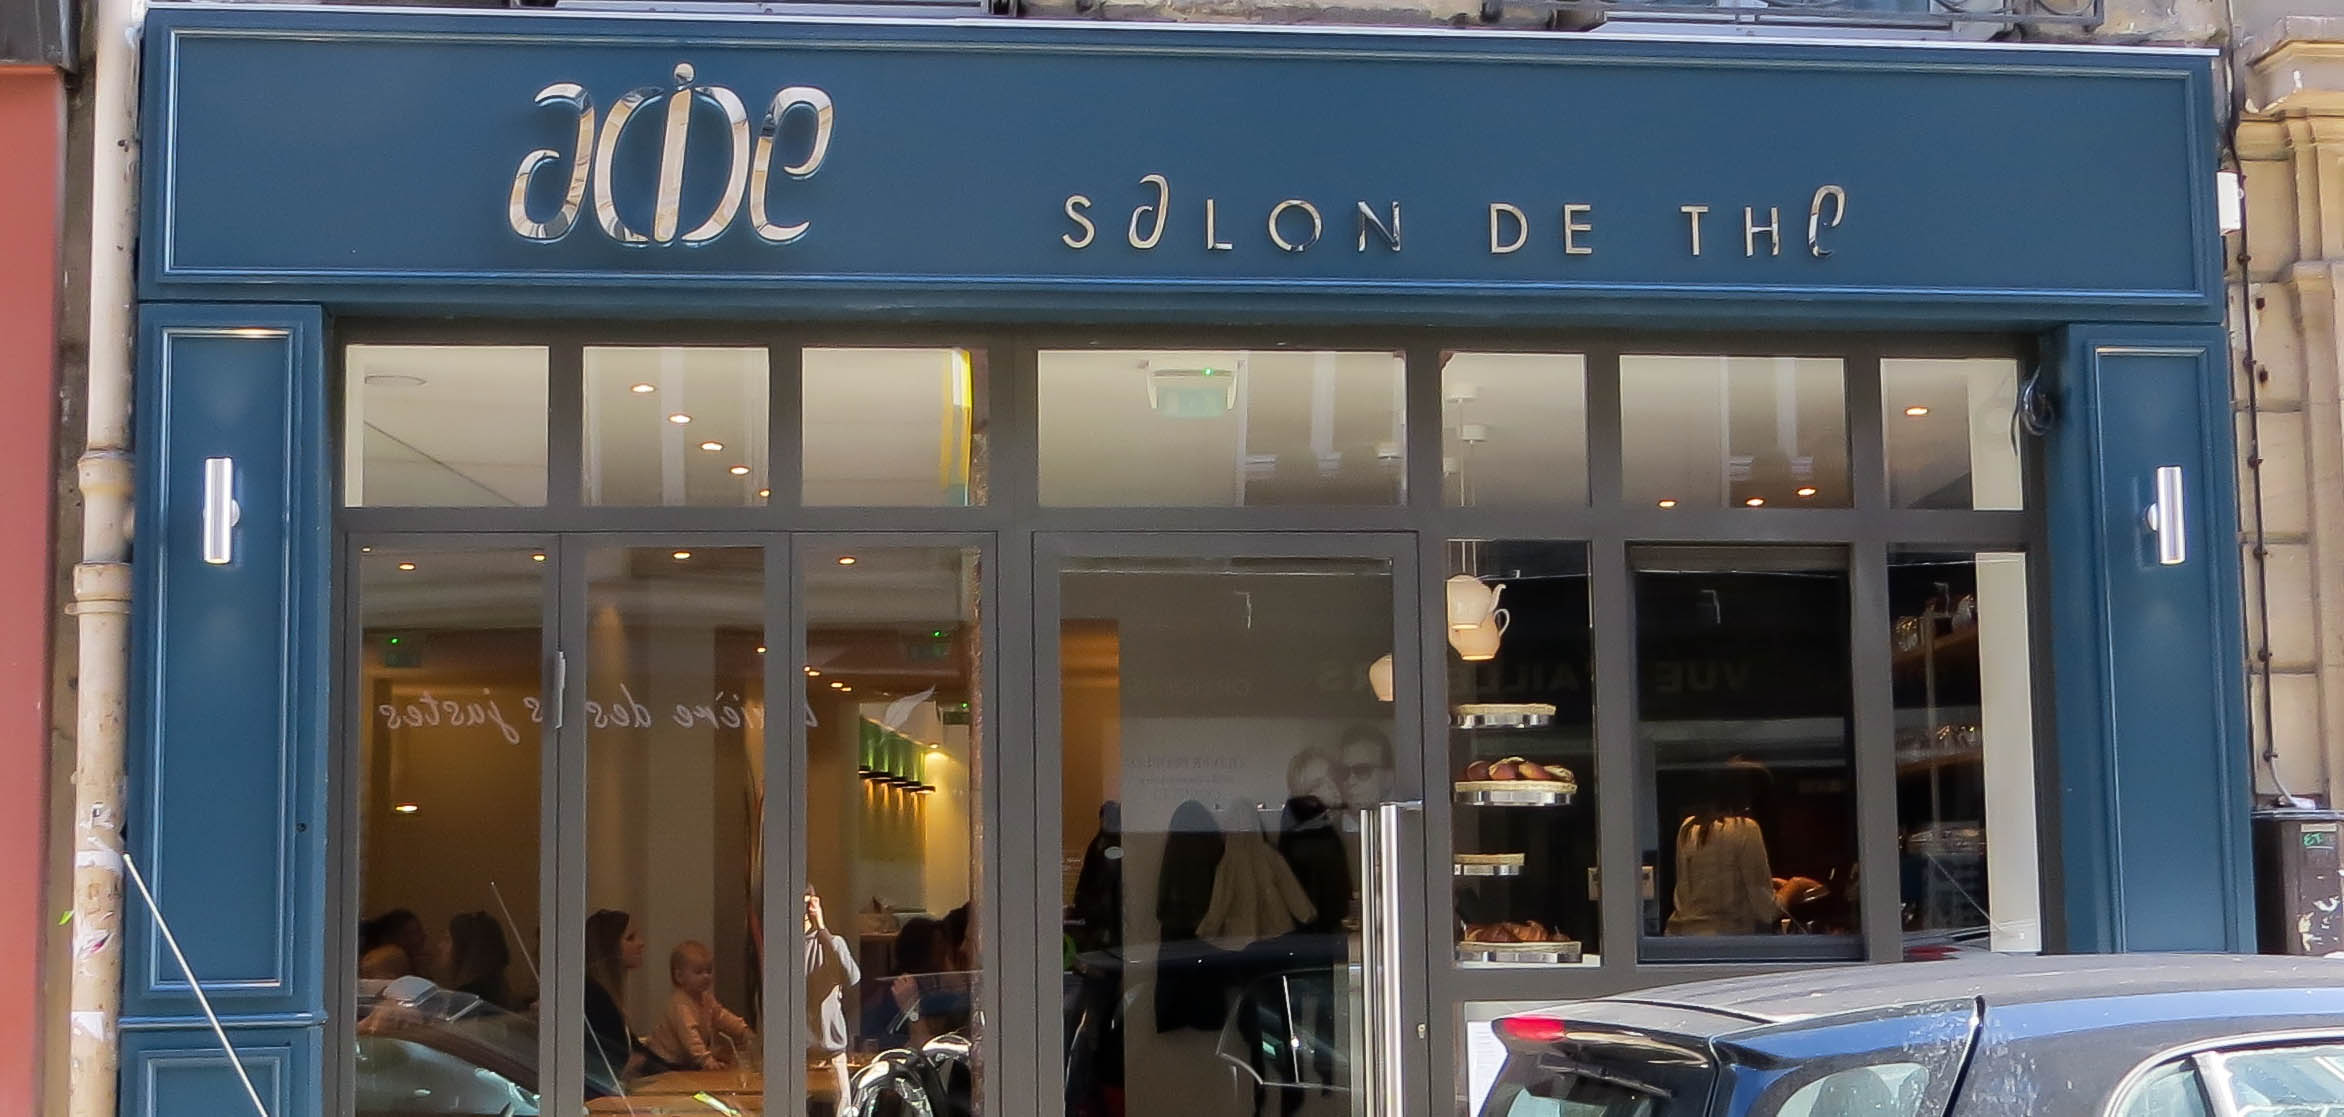 Accrochez vos papilles le salon de th acide est ouvert for Salon de the